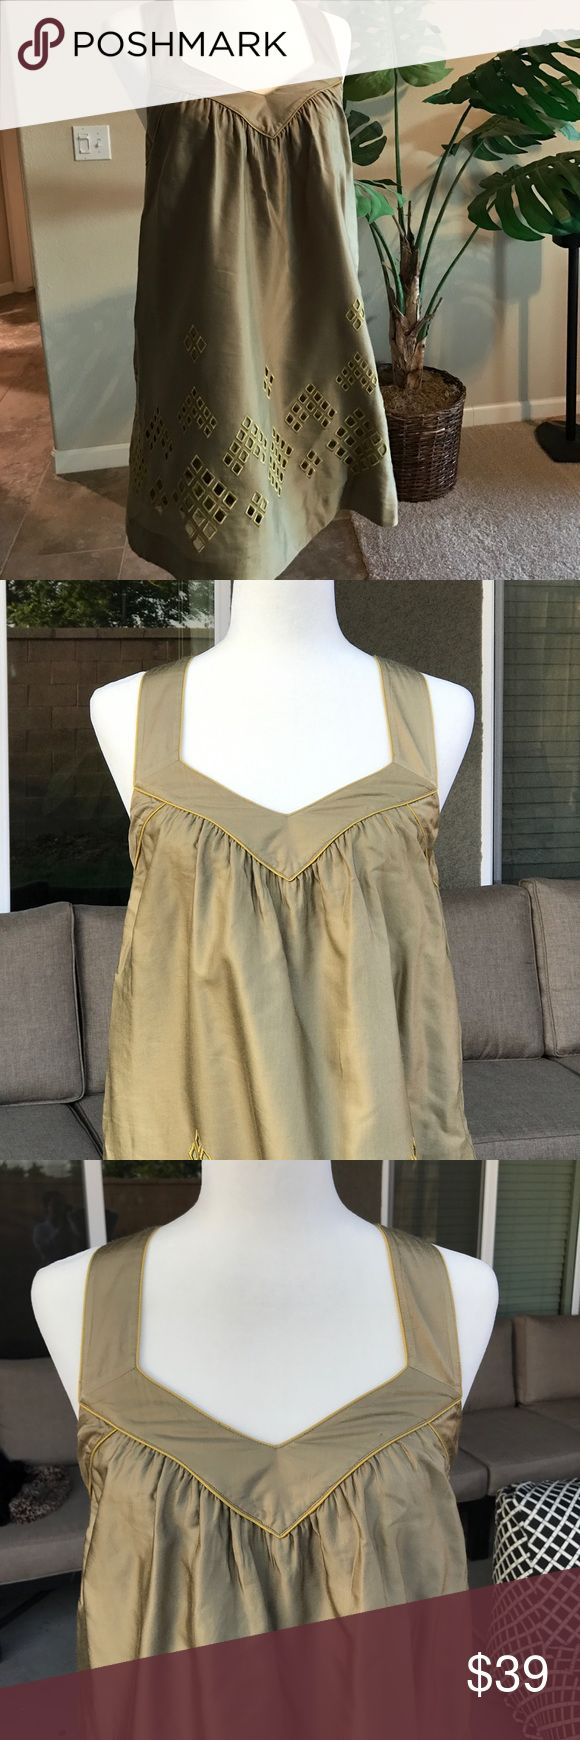 French Connection army green dress Army green dress with gold foam cutouts and a racer back. Pockets and fully lined. Worn only once! French Connection Dresses Mini